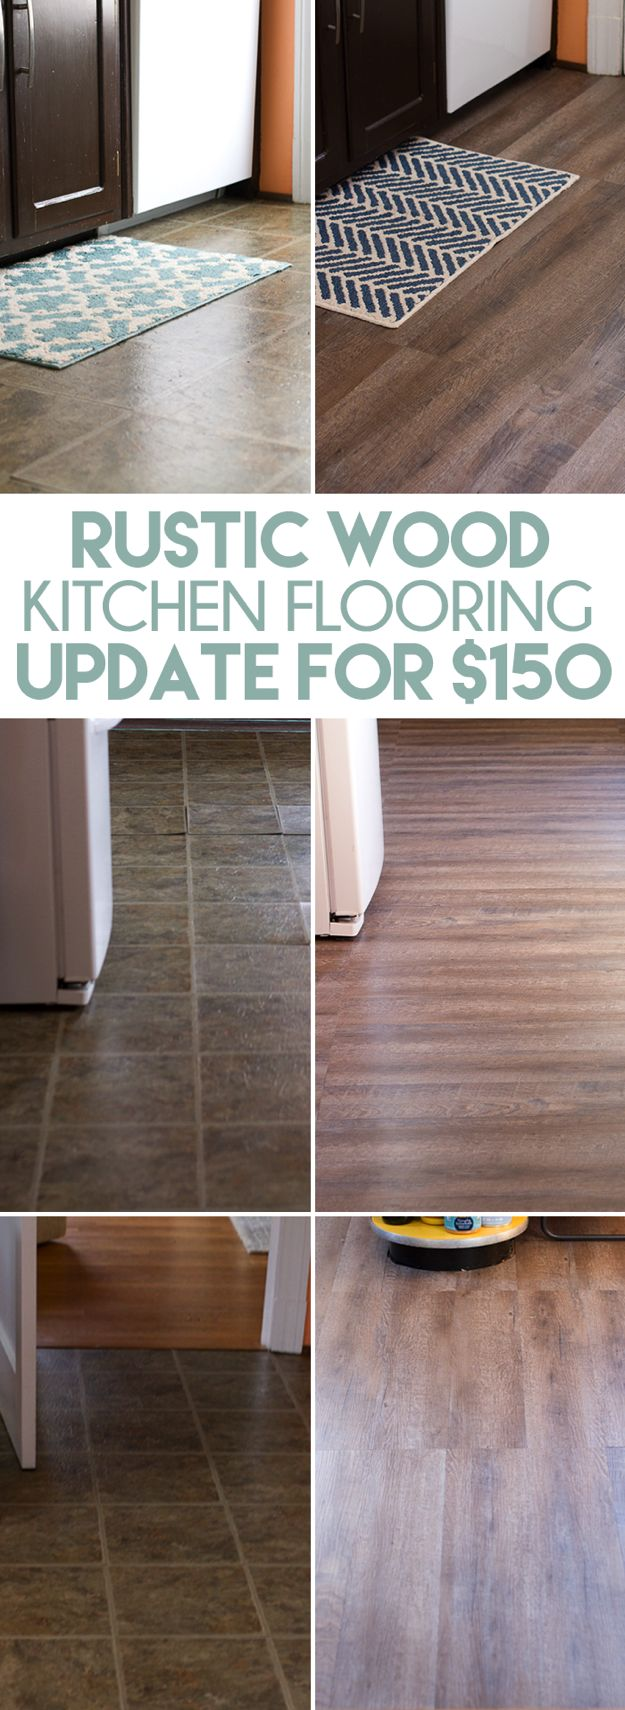 diy rustic wood plank flooring for cheap how we replaced our kitchen flooring with - Cheap Kitchen Floor Ideas